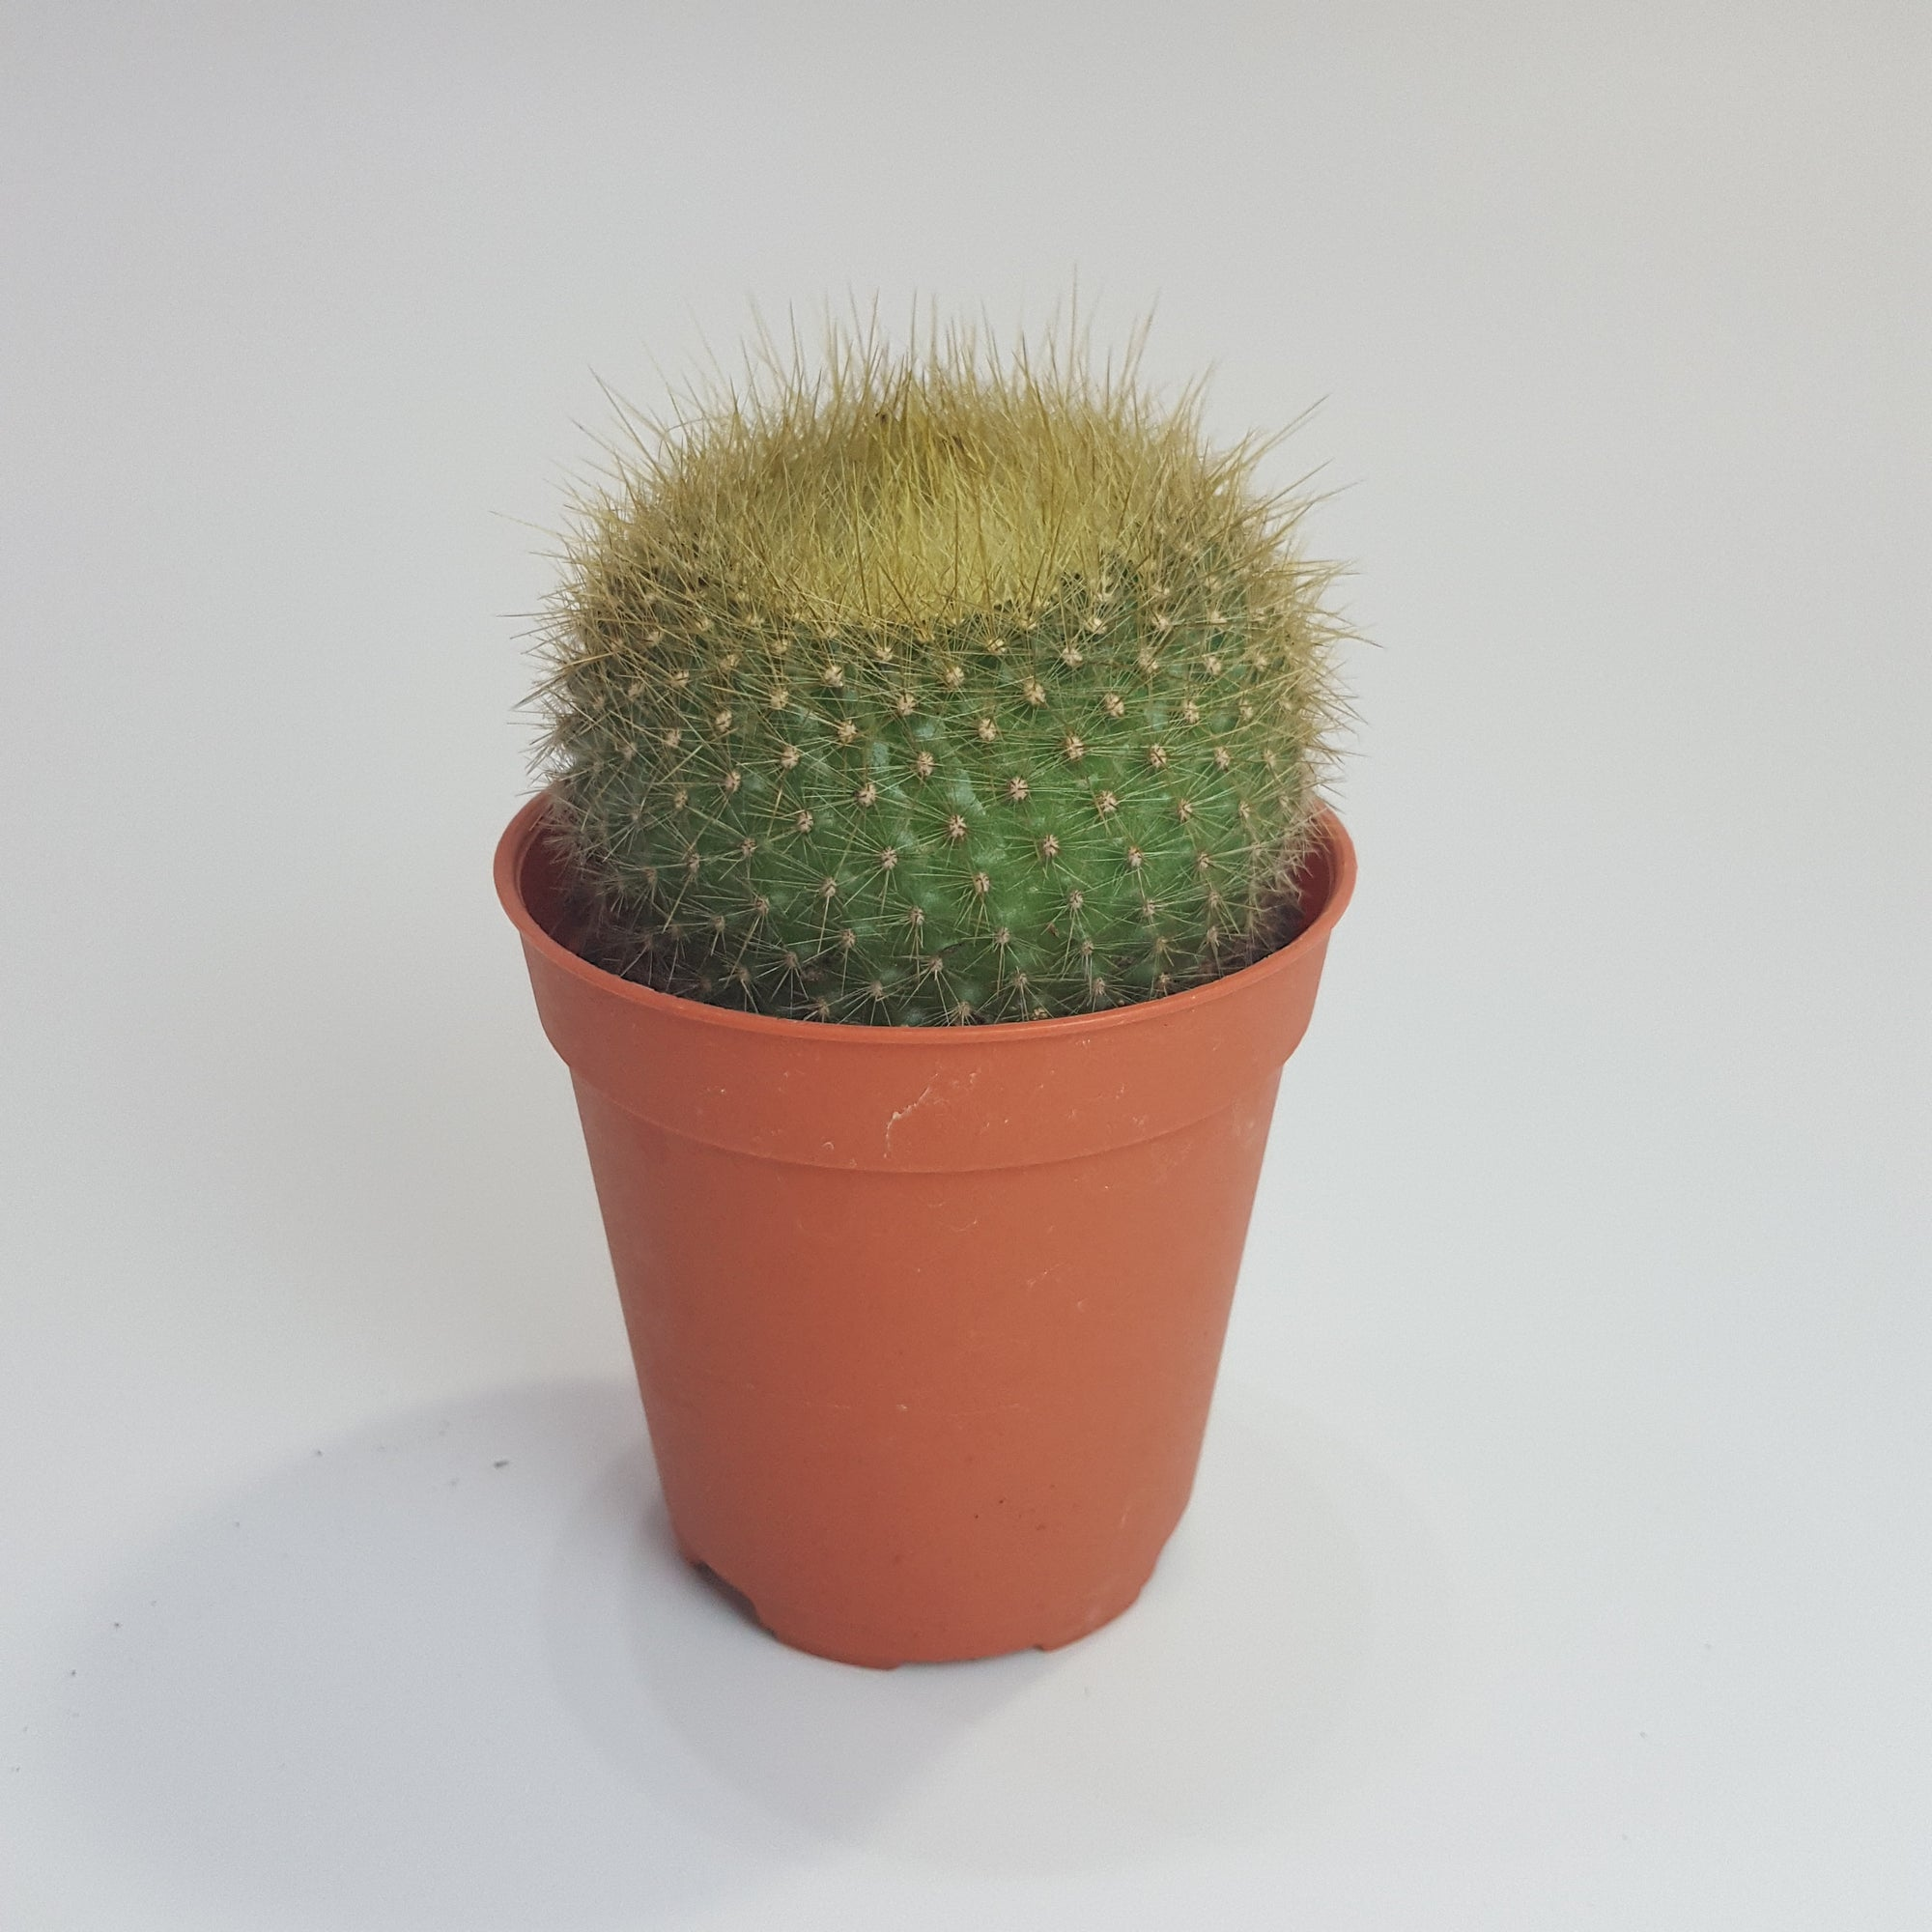 Cactus - Golden Powder Puff, Parodia Chrysacanthion